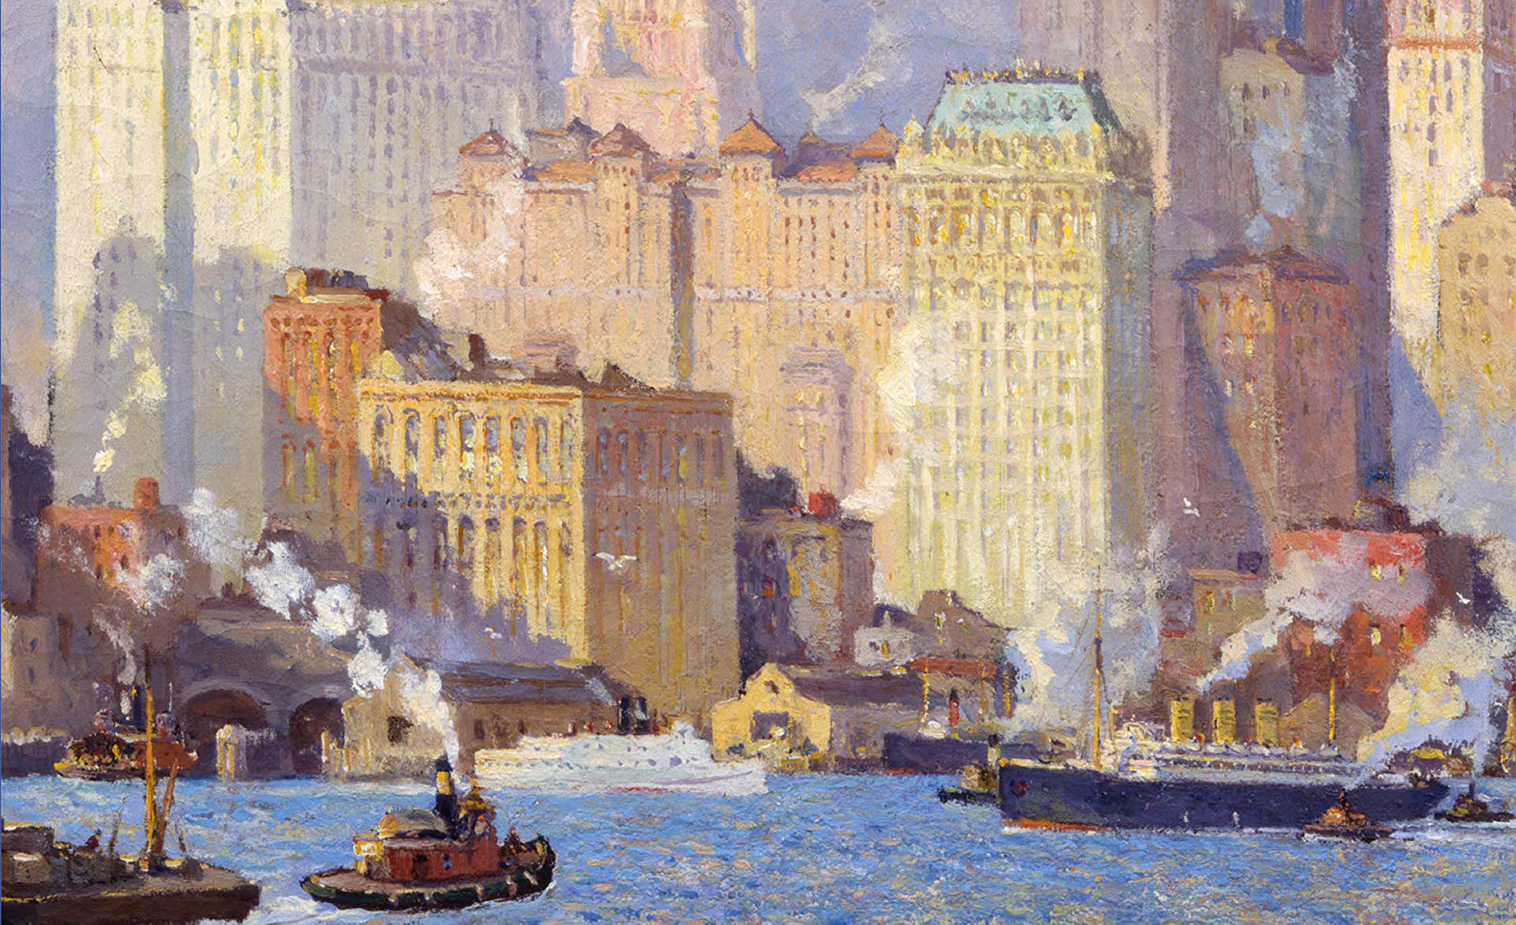 From Hudson River Waterfront, N.Y.C. by Colin Campbell Cooper, ca. 1913-21. New-York Historical Society.